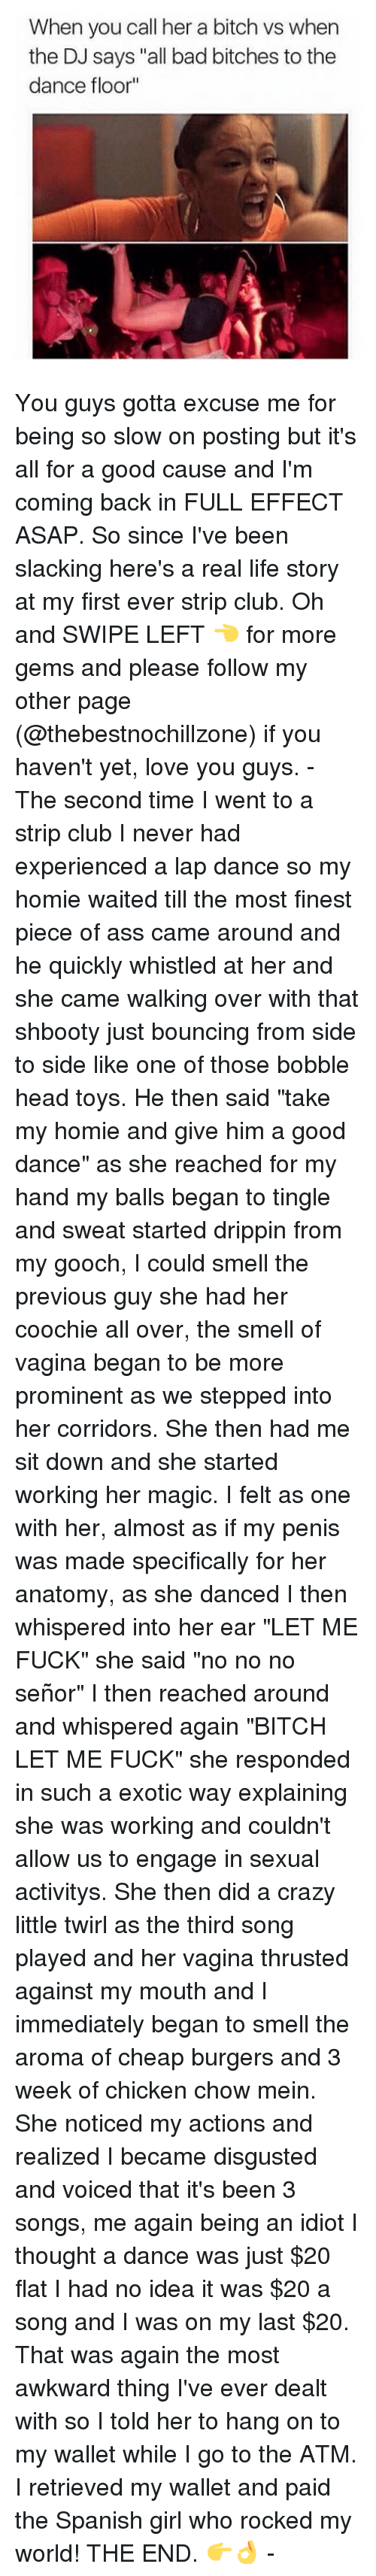 """tingle: When you call her a bitch vs when  the DJ says """"all bad bitches to the  dance floor You guys gotta excuse me for being so slow on posting but it's all for a good cause and I'm coming back in FULL EFFECT ASAP. So since I've been slacking here's a real life story at my first ever strip club. Oh and SWIPE LEFT 👈 for more gems and please follow my other page (@thebestnochillzone) if you haven't yet, love you guys. - The second time I went to a strip club I never had experienced a lap dance so my homie waited till the most finest piece of ass came around and he quickly whistled at her and she came walking over with that shbooty just bouncing from side to side like one of those bobble head toys. He then said """"take my homie and give him a good dance"""" as she reached for my hand my balls began to tingle and sweat started drippin from my gooch, I could smell the previous guy she had her coochie all over, the smell of vagina began to be more prominent as we stepped into her corridors. She then had me sit down and she started working her magic. I felt as one with her, almost as if my penis was made specifically for her anatomy, as she danced I then whispered into her ear """"LET ME FUCK"""" she said """"no no no señor"""" I then reached around and whispered again """"BITCH LET ME FUCK"""" she responded in such a exotic way explaining she was working and couldn't allow us to engage in sexual activitys. She then did a crazy little twirl as the third song played and her vagina thrusted against my mouth and I immediately began to smell the aroma of cheap burgers and 3 week of chicken chow mein. She noticed my actions and realized I became disgusted and voiced that it's been 3 songs, me again being an idiot I thought a dance was just $20 flat I had no idea it was $20 a song and I was on my last $20. That was again the most awkward thing I've ever dealt with so I told her to hang on to my wallet while I go to the ATM. I retrieved my wallet and paid the Spanish girl who rocked my world! THE END"""